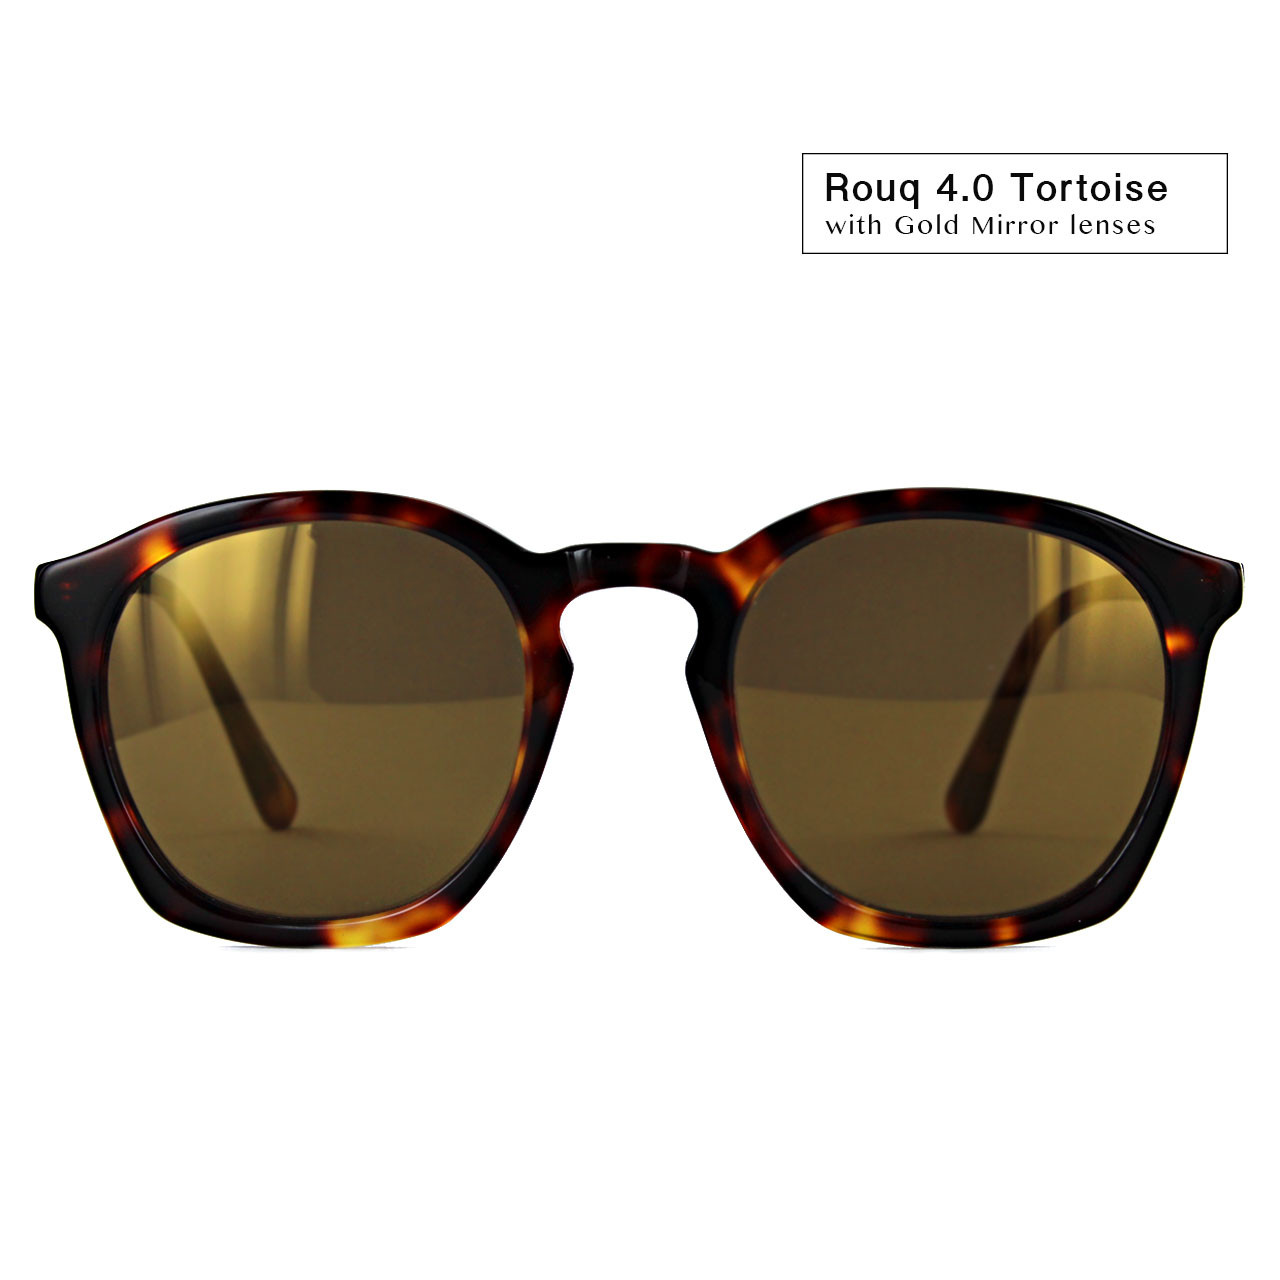 Rouq 4.0 Tortoise with Gold Mirror Lenses